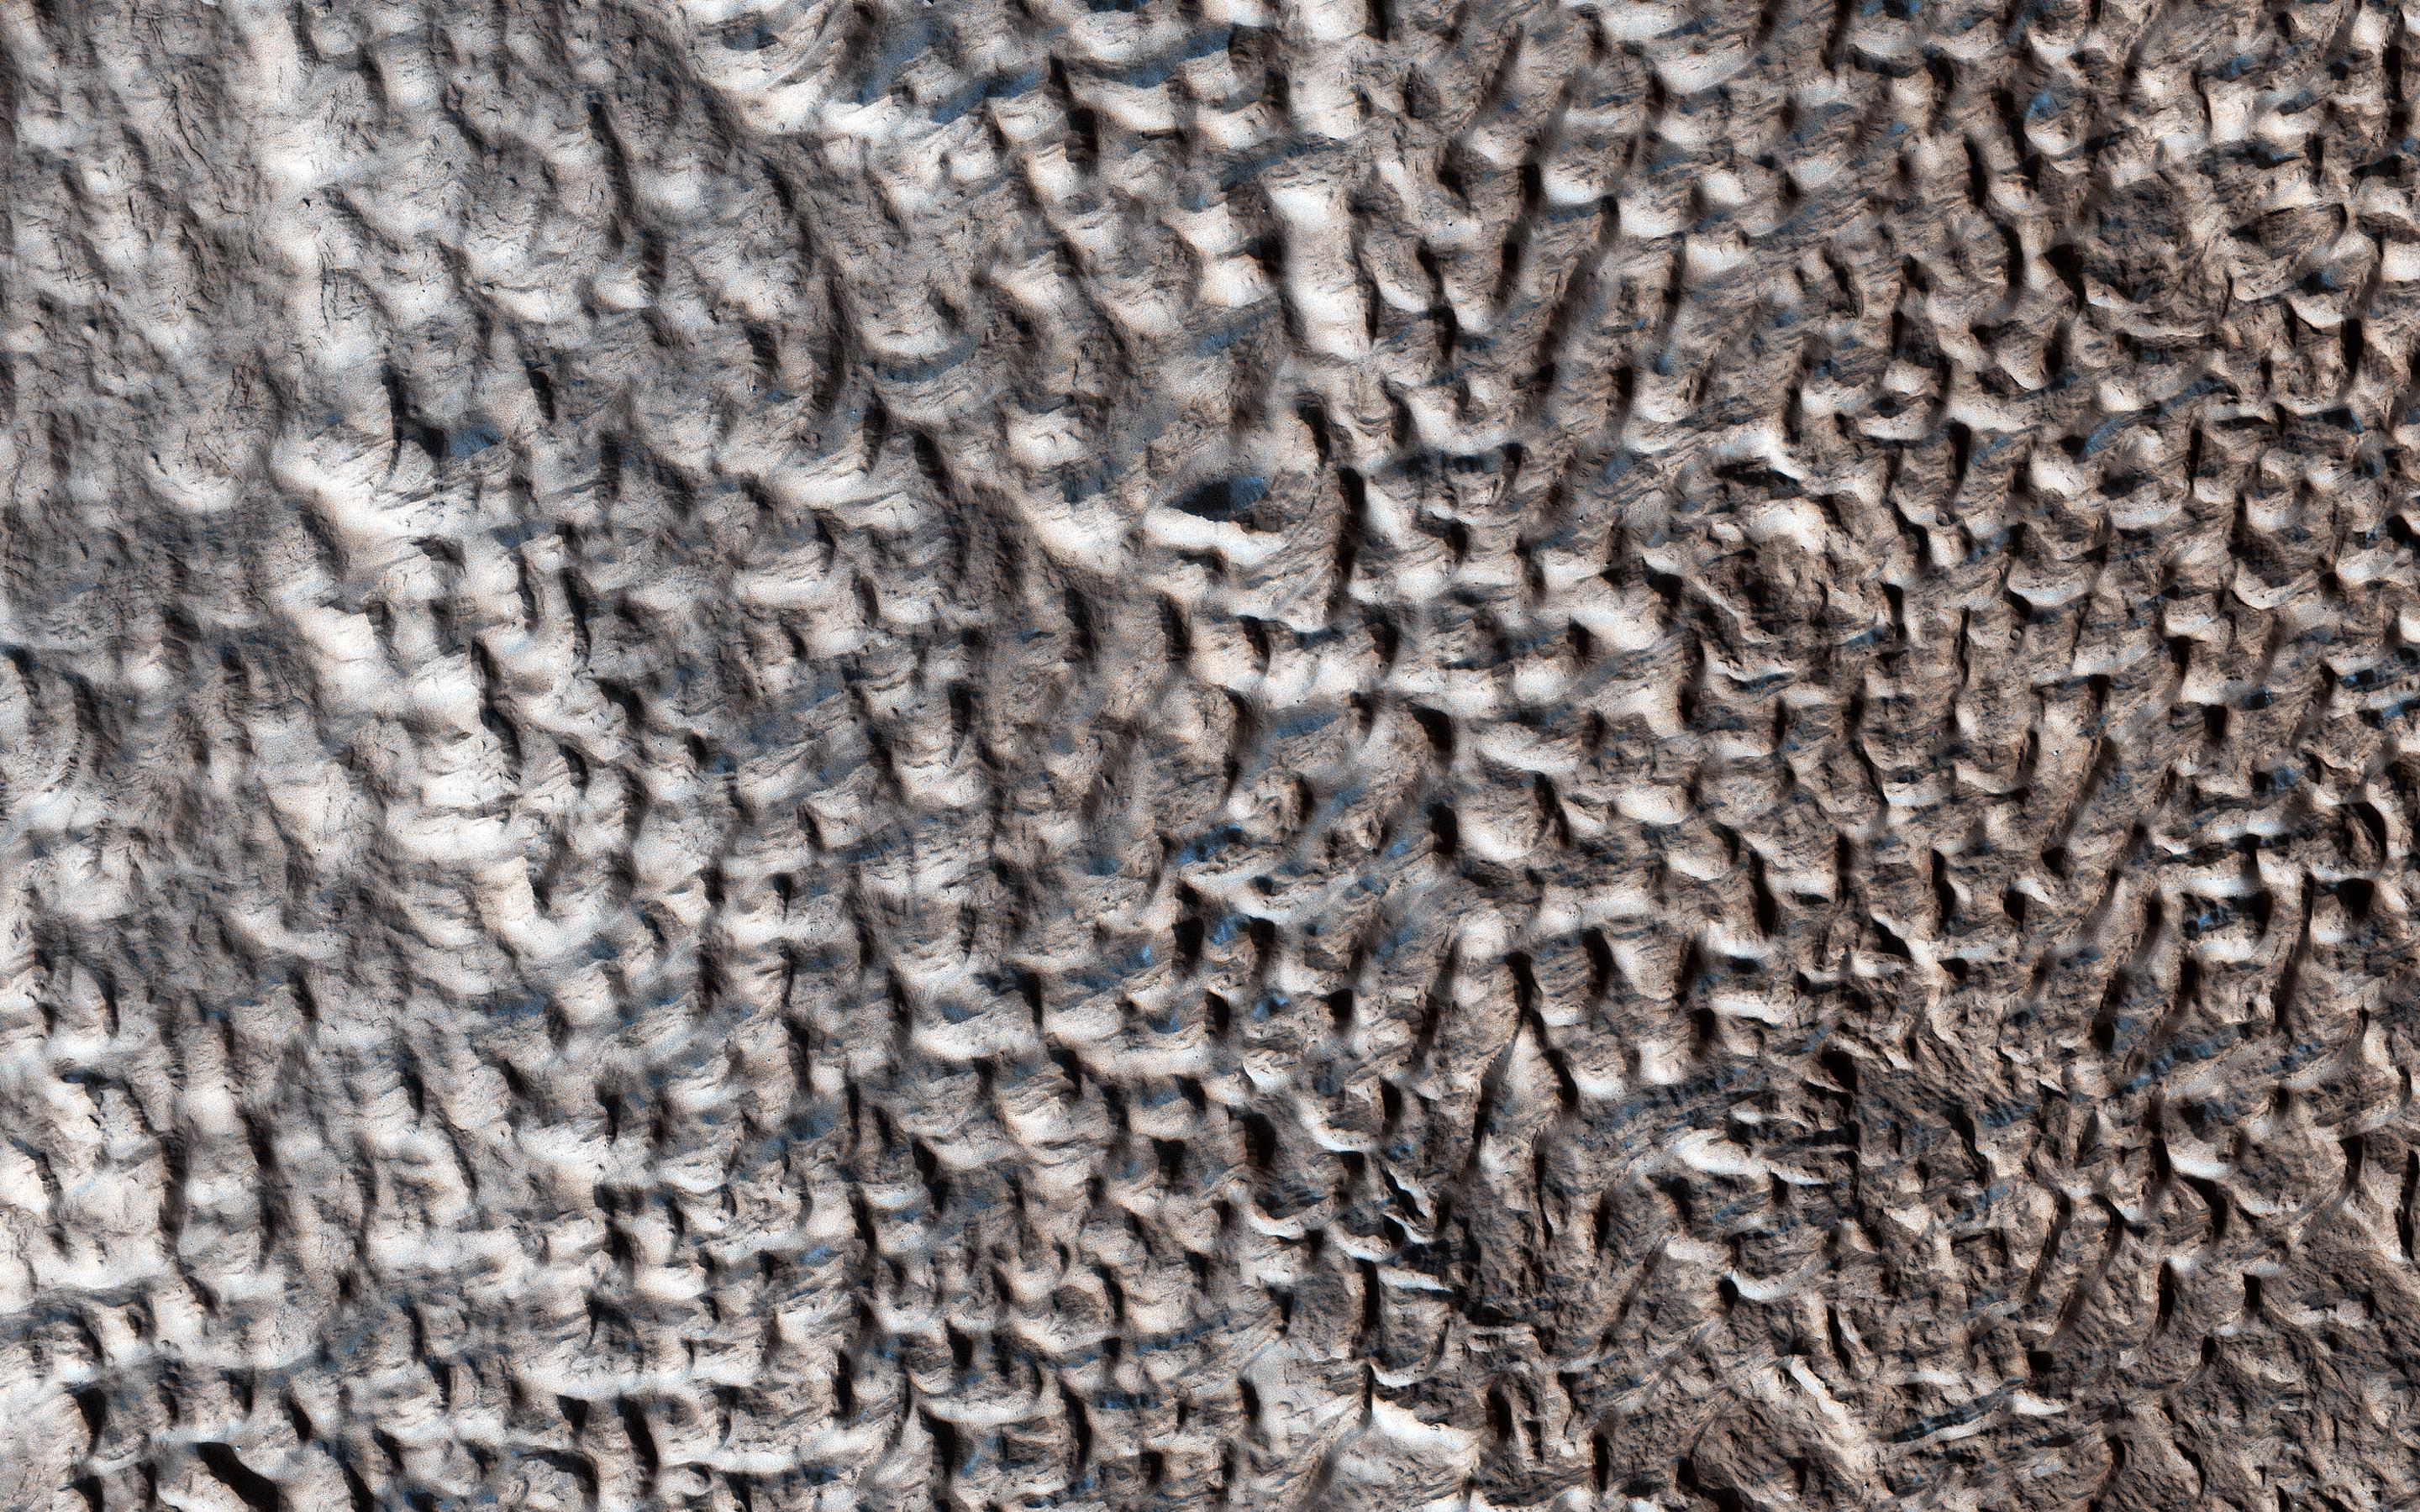 This image acquired on December 11, 2018 by NASAs Mars Reconnaissance Orbiter, shows a surface texture of interconnected ridges and troughs, referred to as brain terrain, found throughout the mid-latitude regions of Mars.